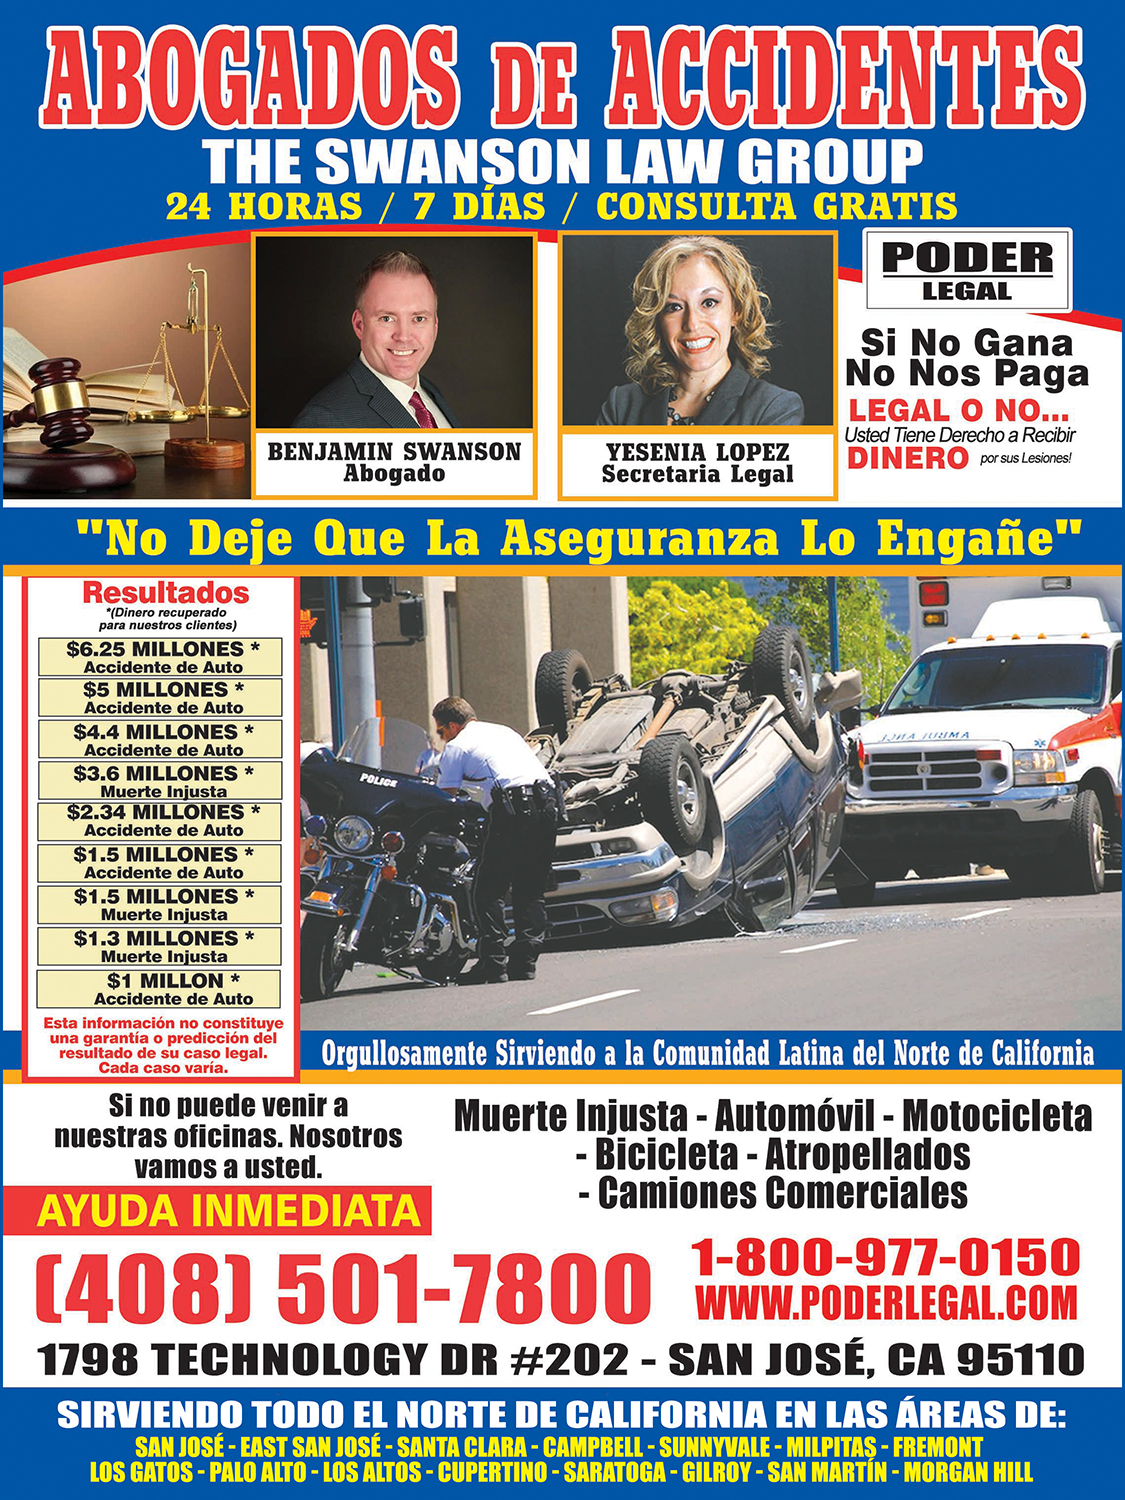 The Swanson Law Group 1 Pag GLOSSY- DICIEMBRE 2018 copy.jpg